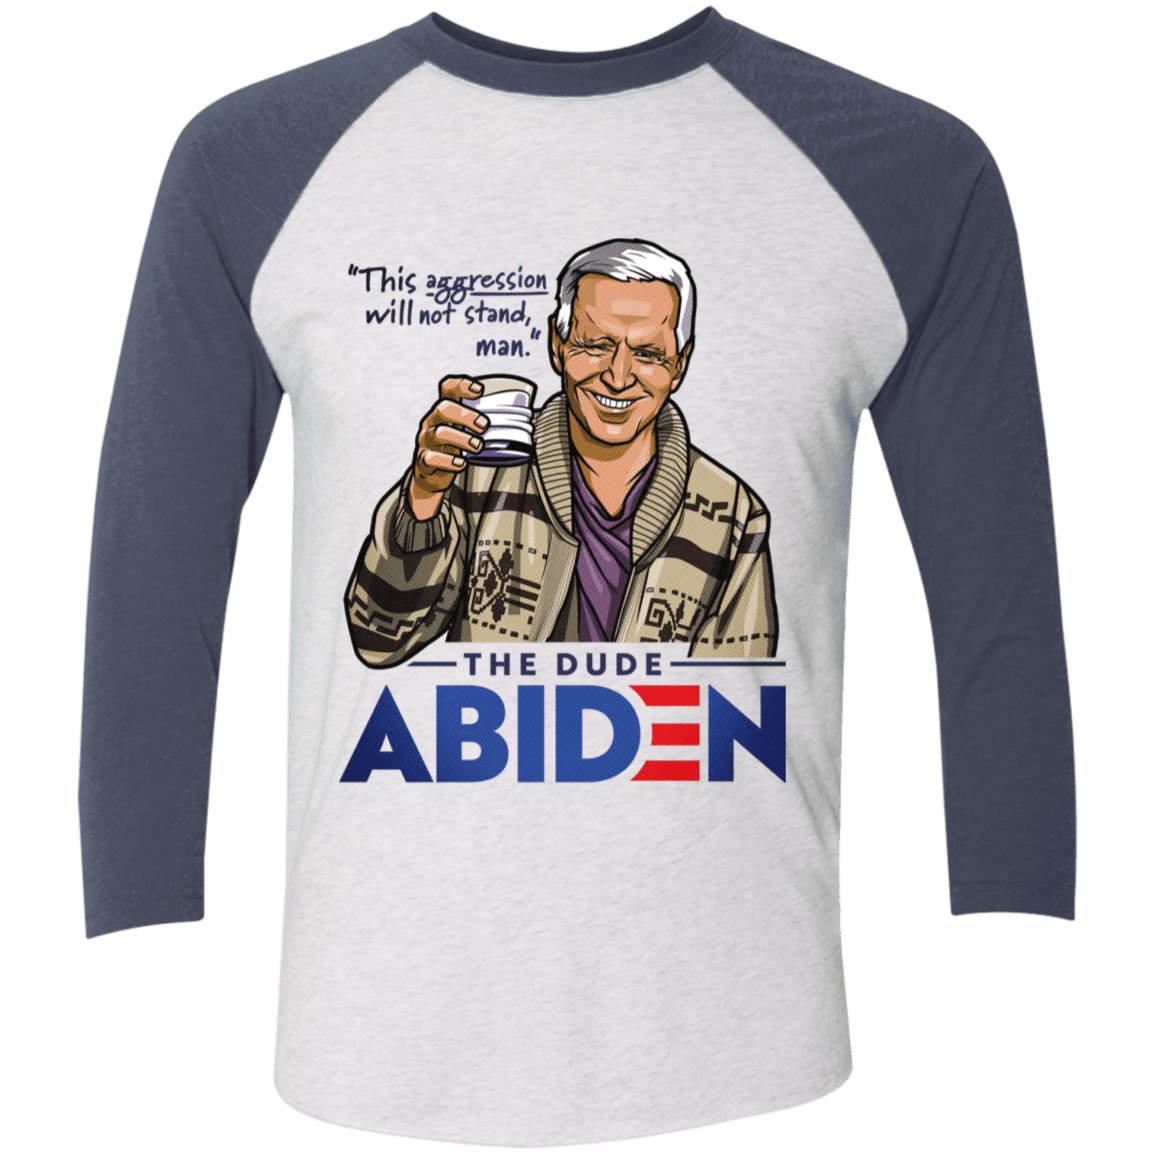 T-Shirts Heather White/Indigo / S The Dude Abiden Men's Triblend 3/4 Sleeve